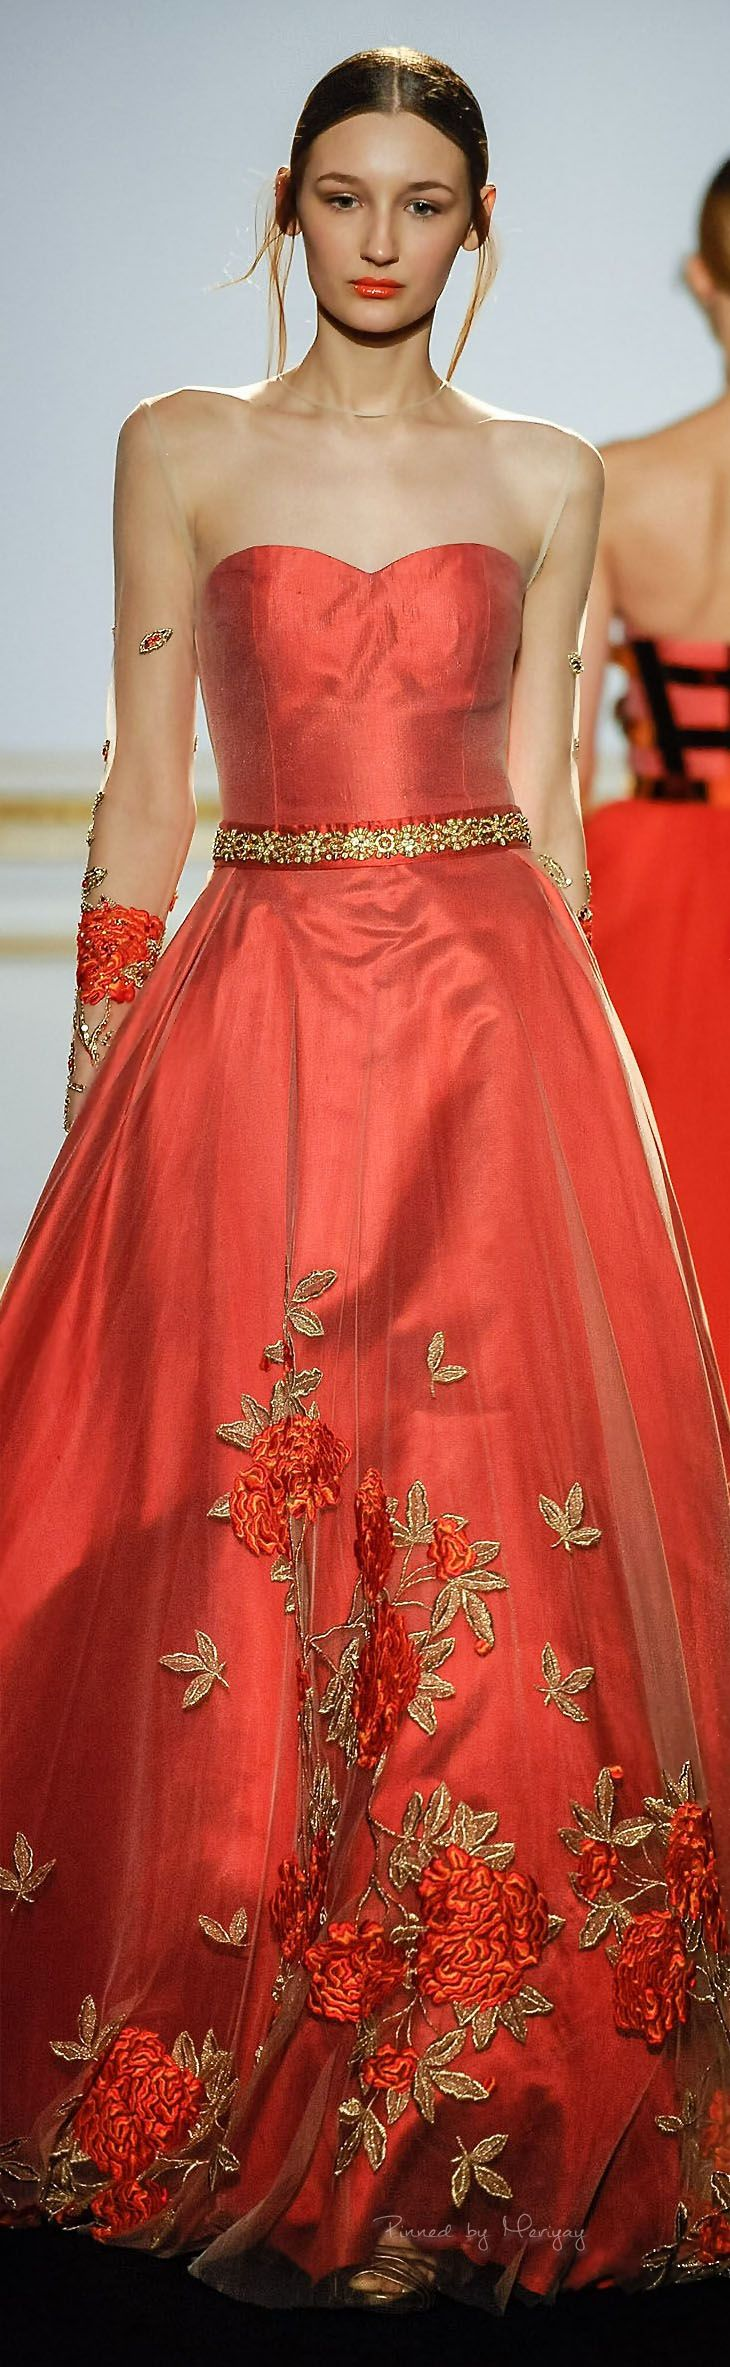 Dany Atrache ~ Couture Summer Coral Gown w Gold Embroidery 2015 .